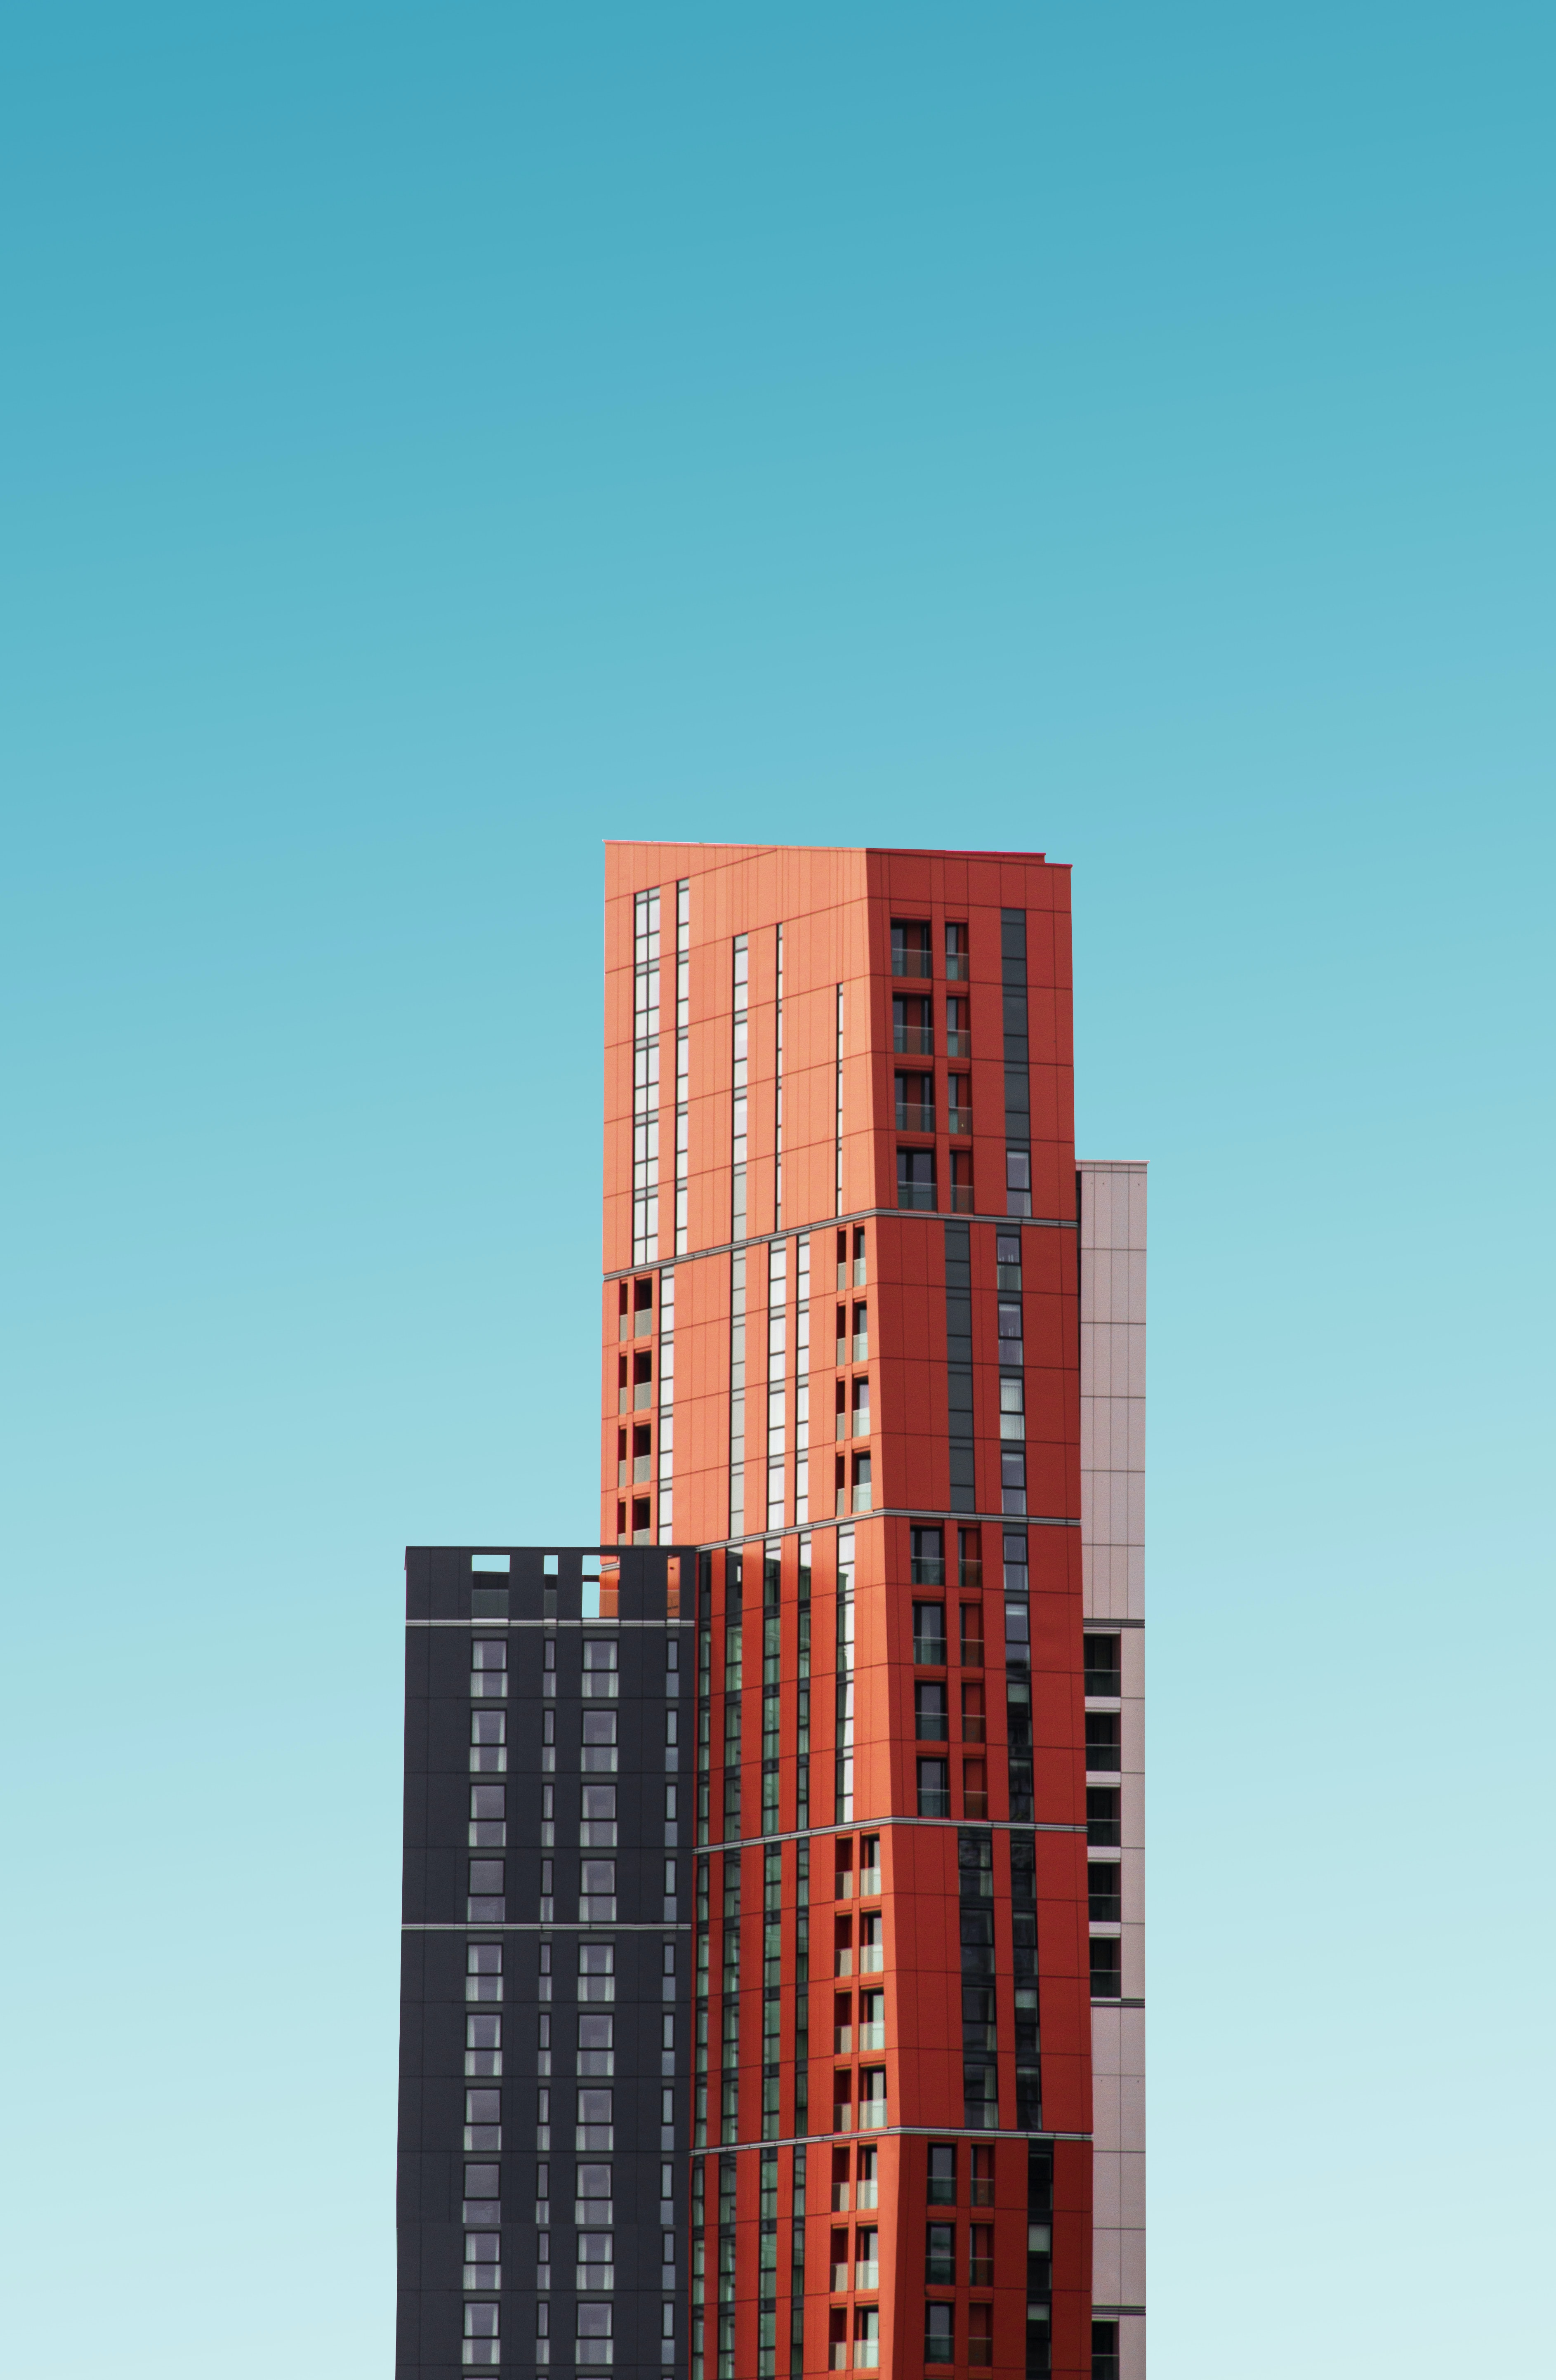 orange and black high rise building